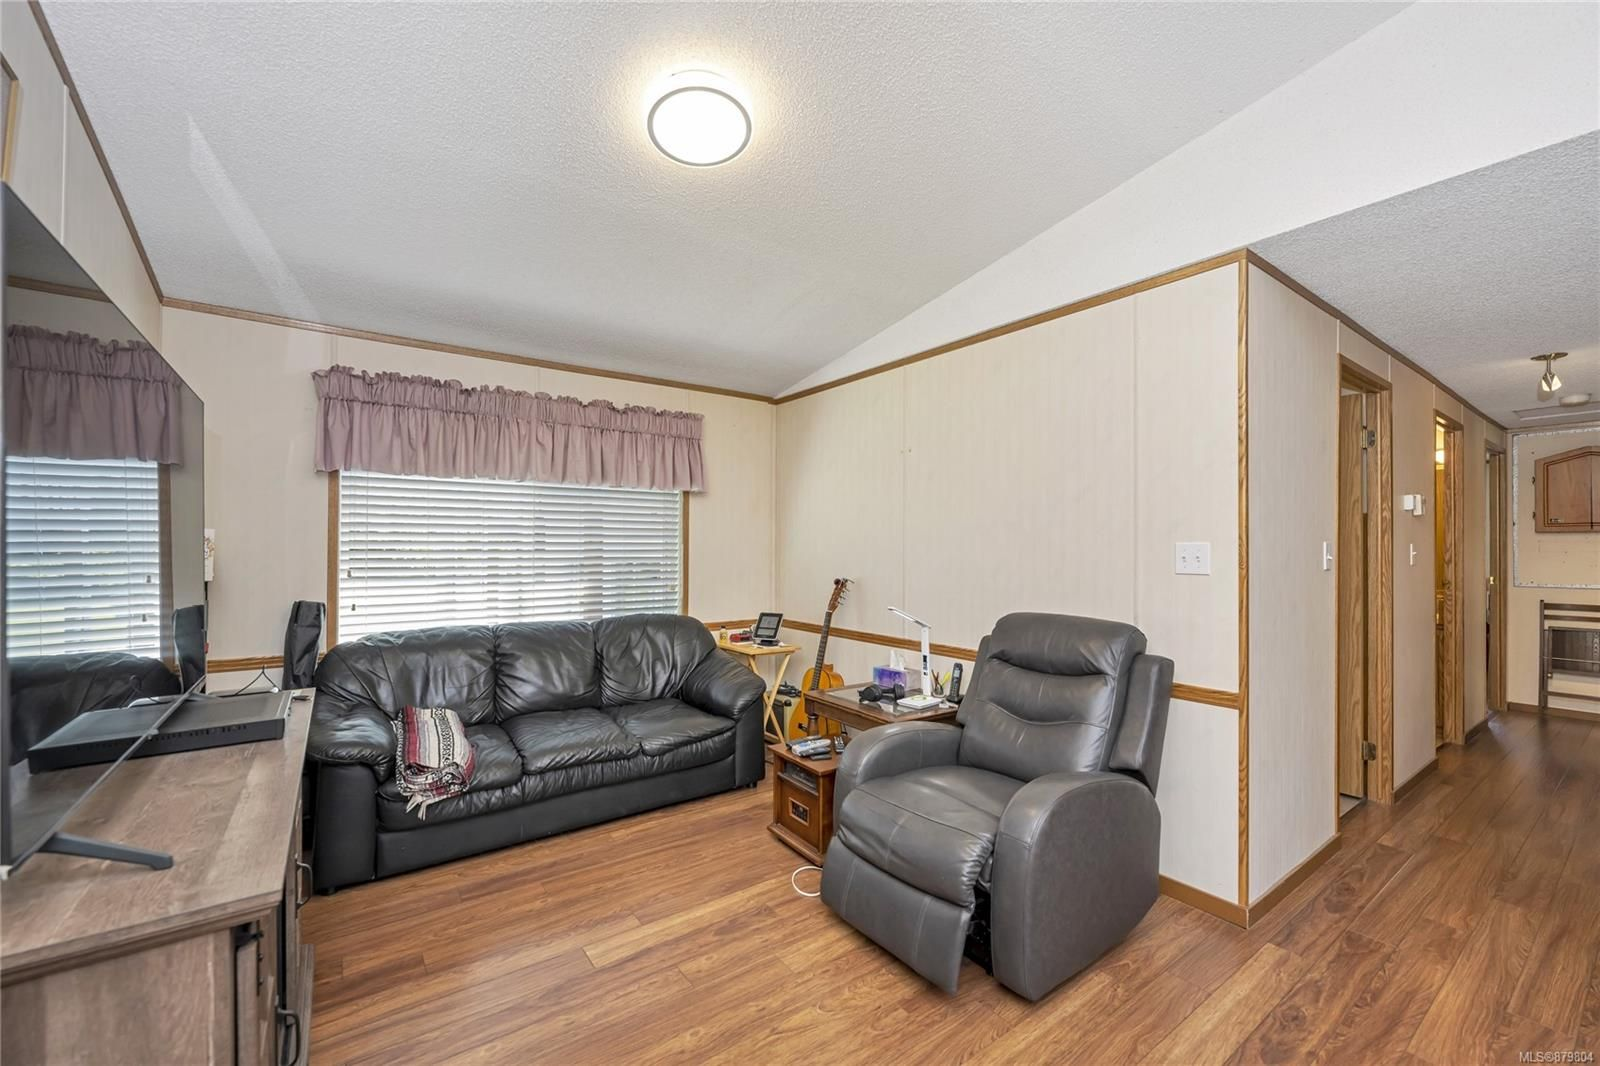 Photo 25: Photos: 3596 Riverside Rd in : ML Cobble Hill Manufactured Home for sale (Malahat & Area)  : MLS®# 879804